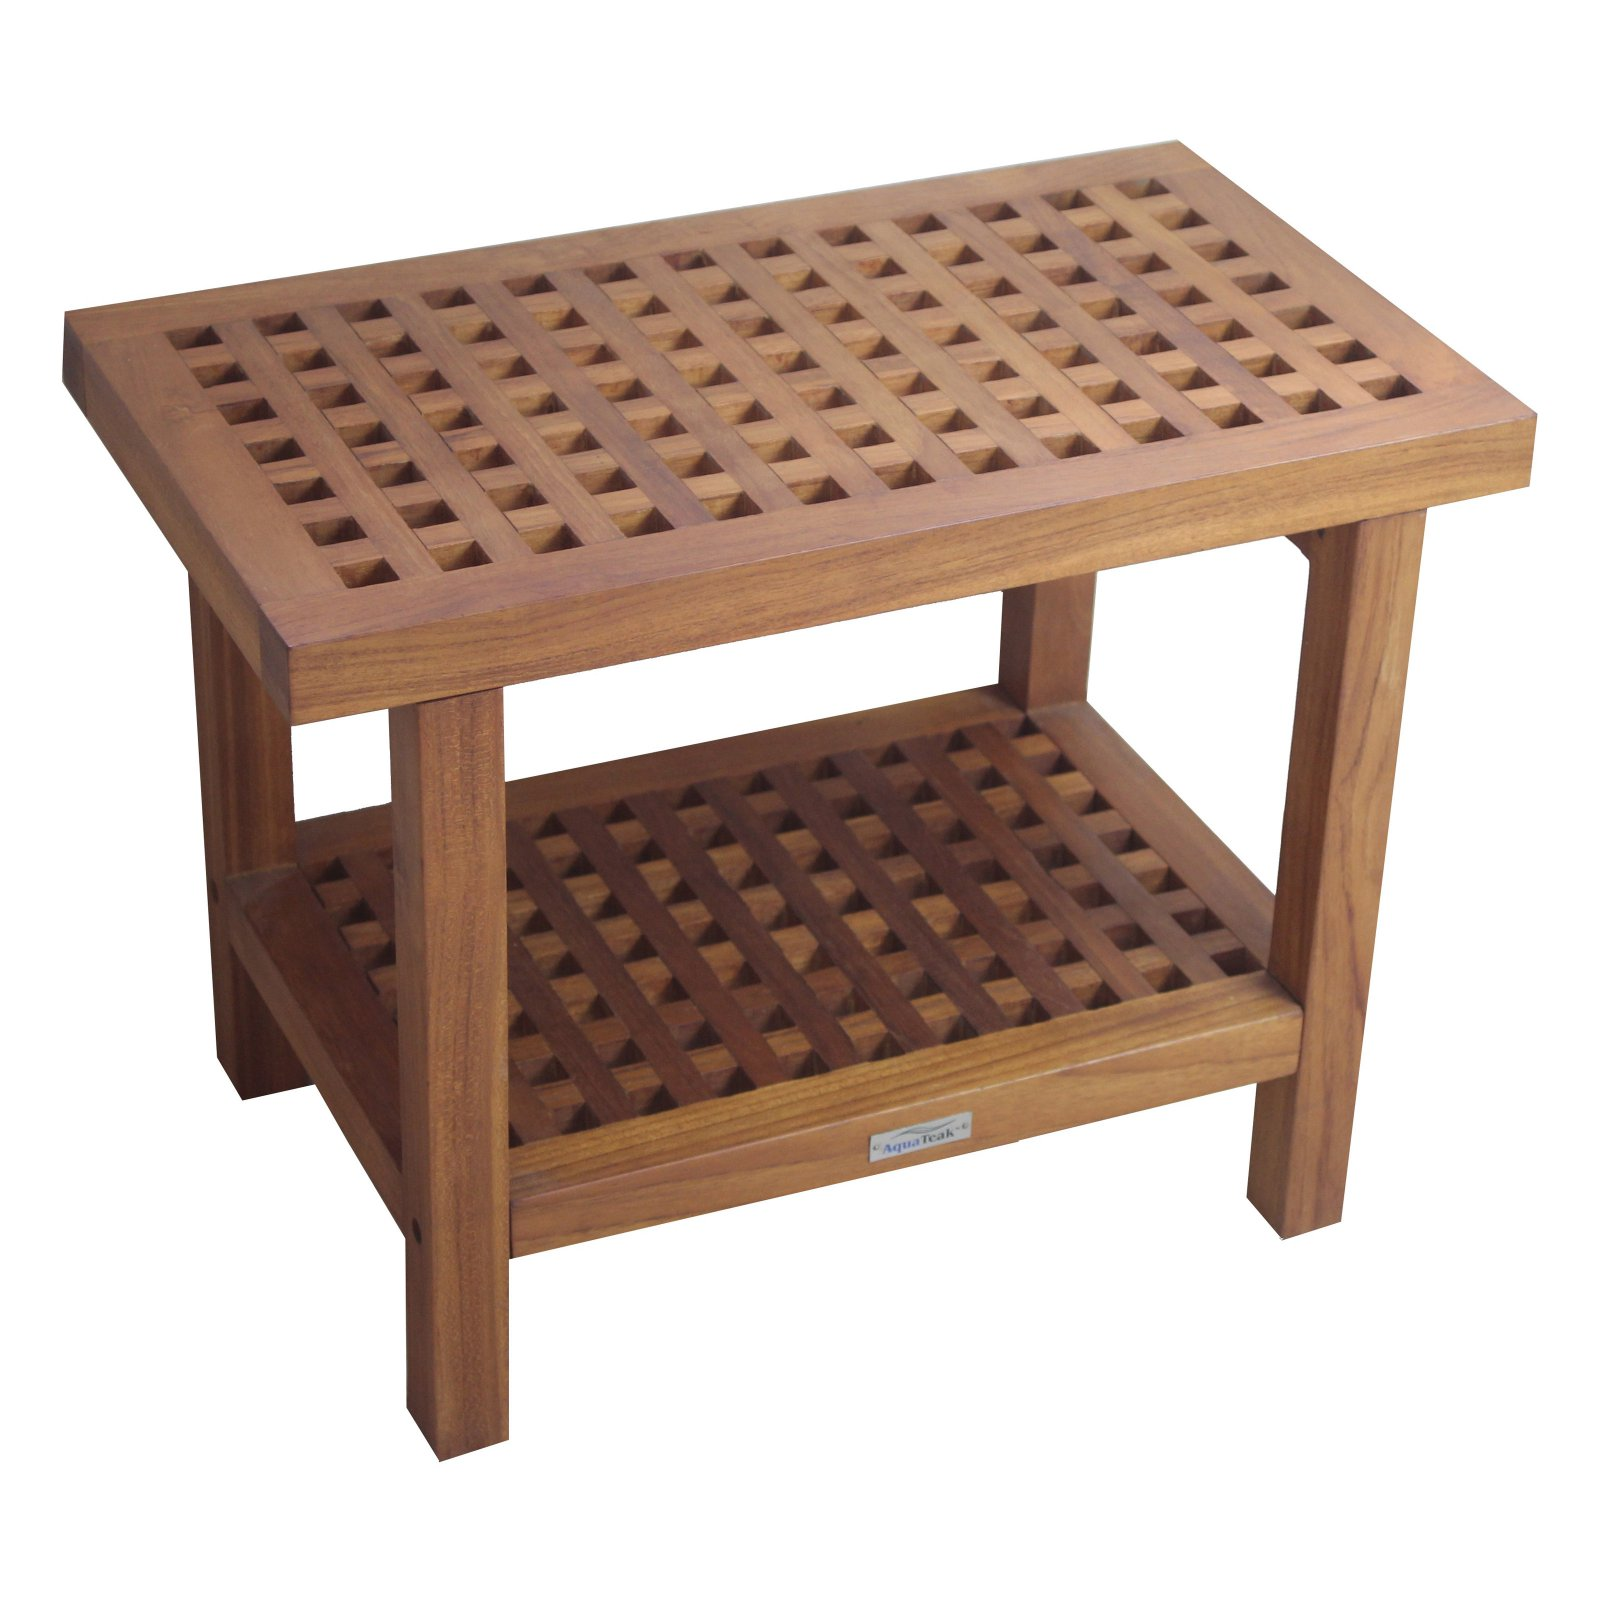 Aqua Teak Grate Bench with Shelf 24 in. Wide